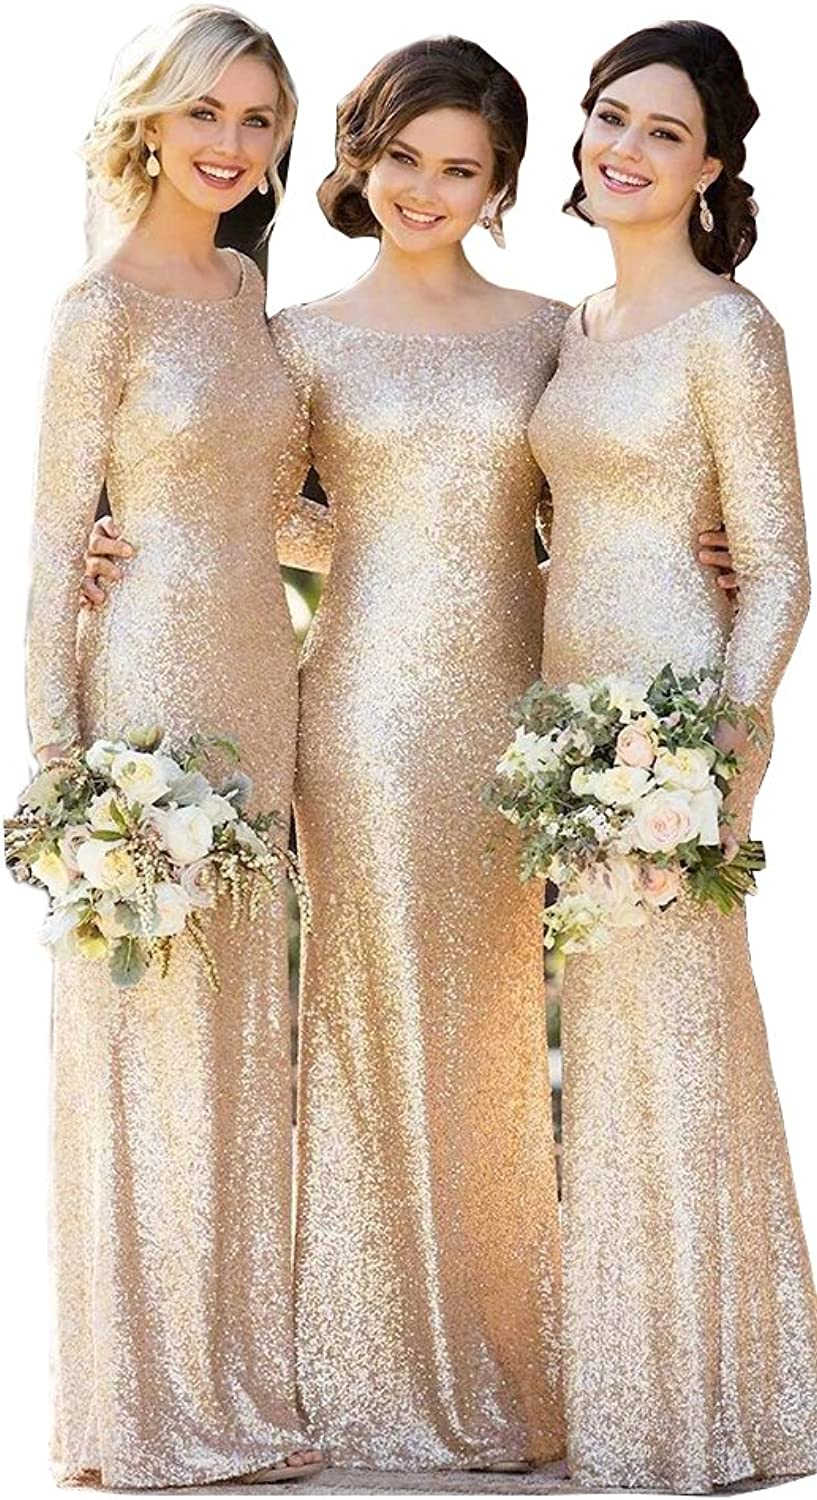 Chenghouse Sequined Bridesmaid Dresses Scoop Neck Long Sleeves Bridesmaid Gowns